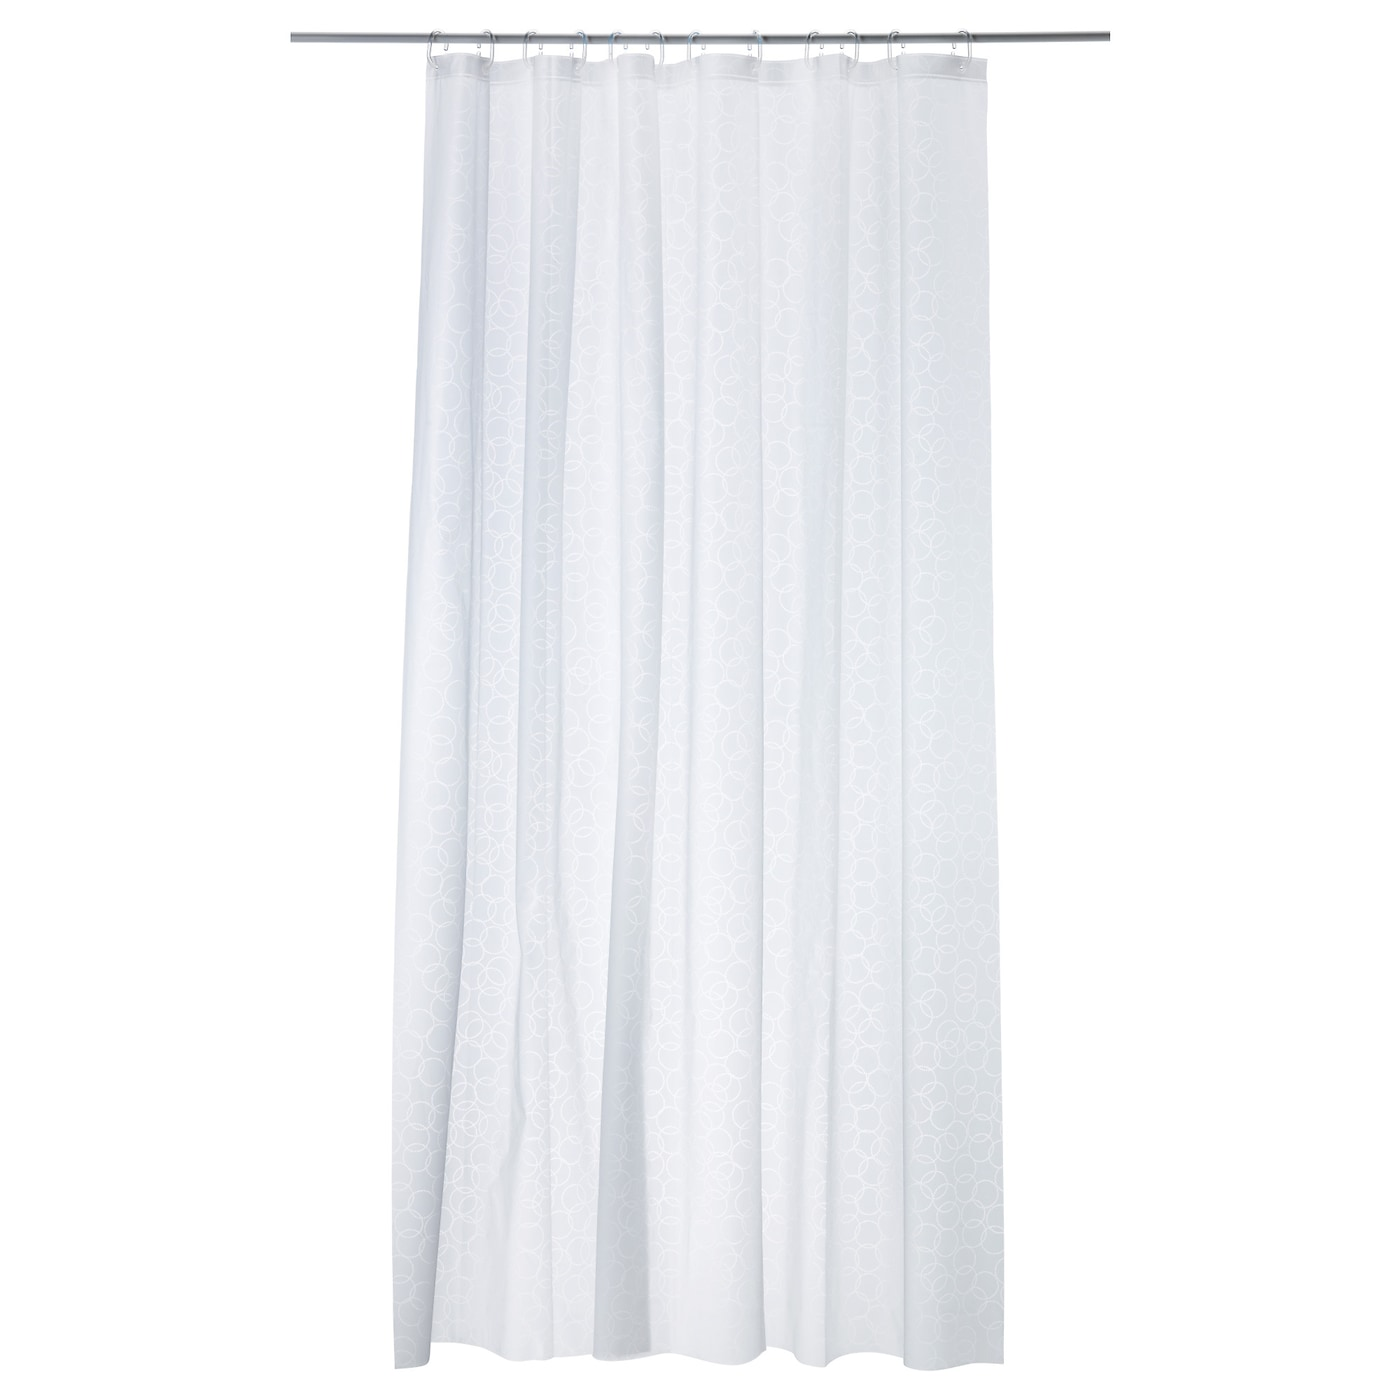 white shower curtain. IKEA INNAREN Shower Curtain Can Be Easily Cut To The Desired Length. White A